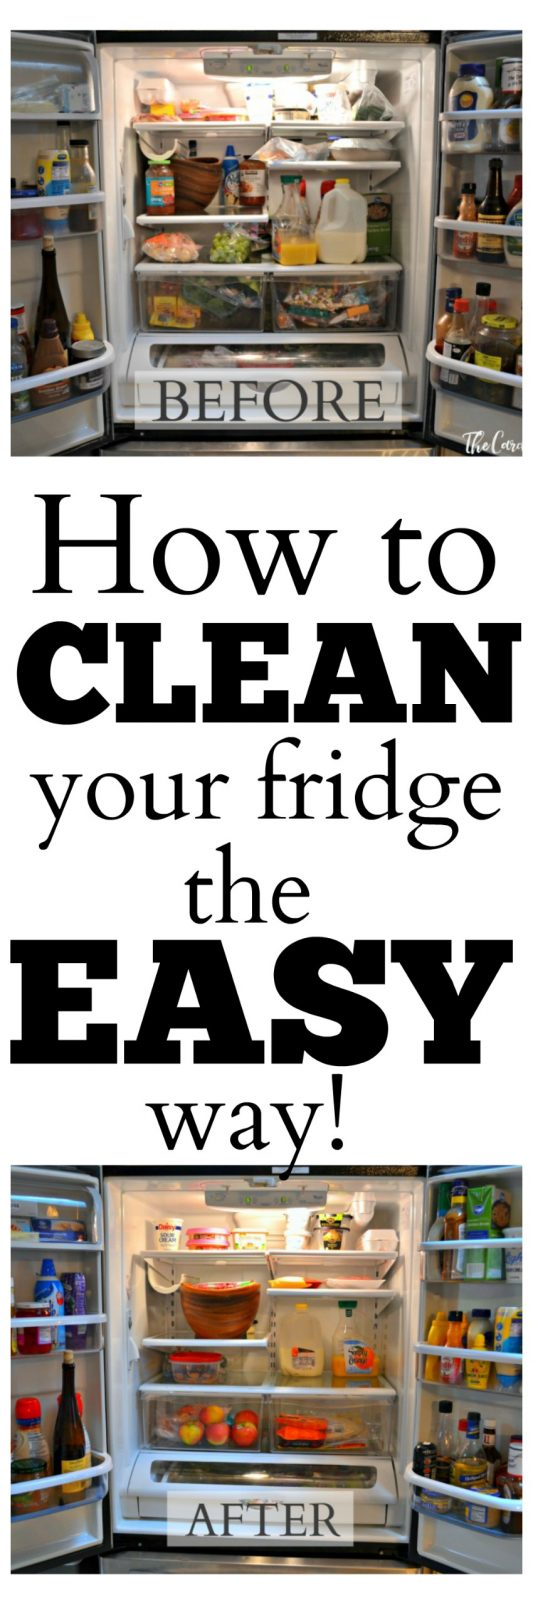 how to clean and organize your fridge the easy way the cards we drew. Black Bedroom Furniture Sets. Home Design Ideas